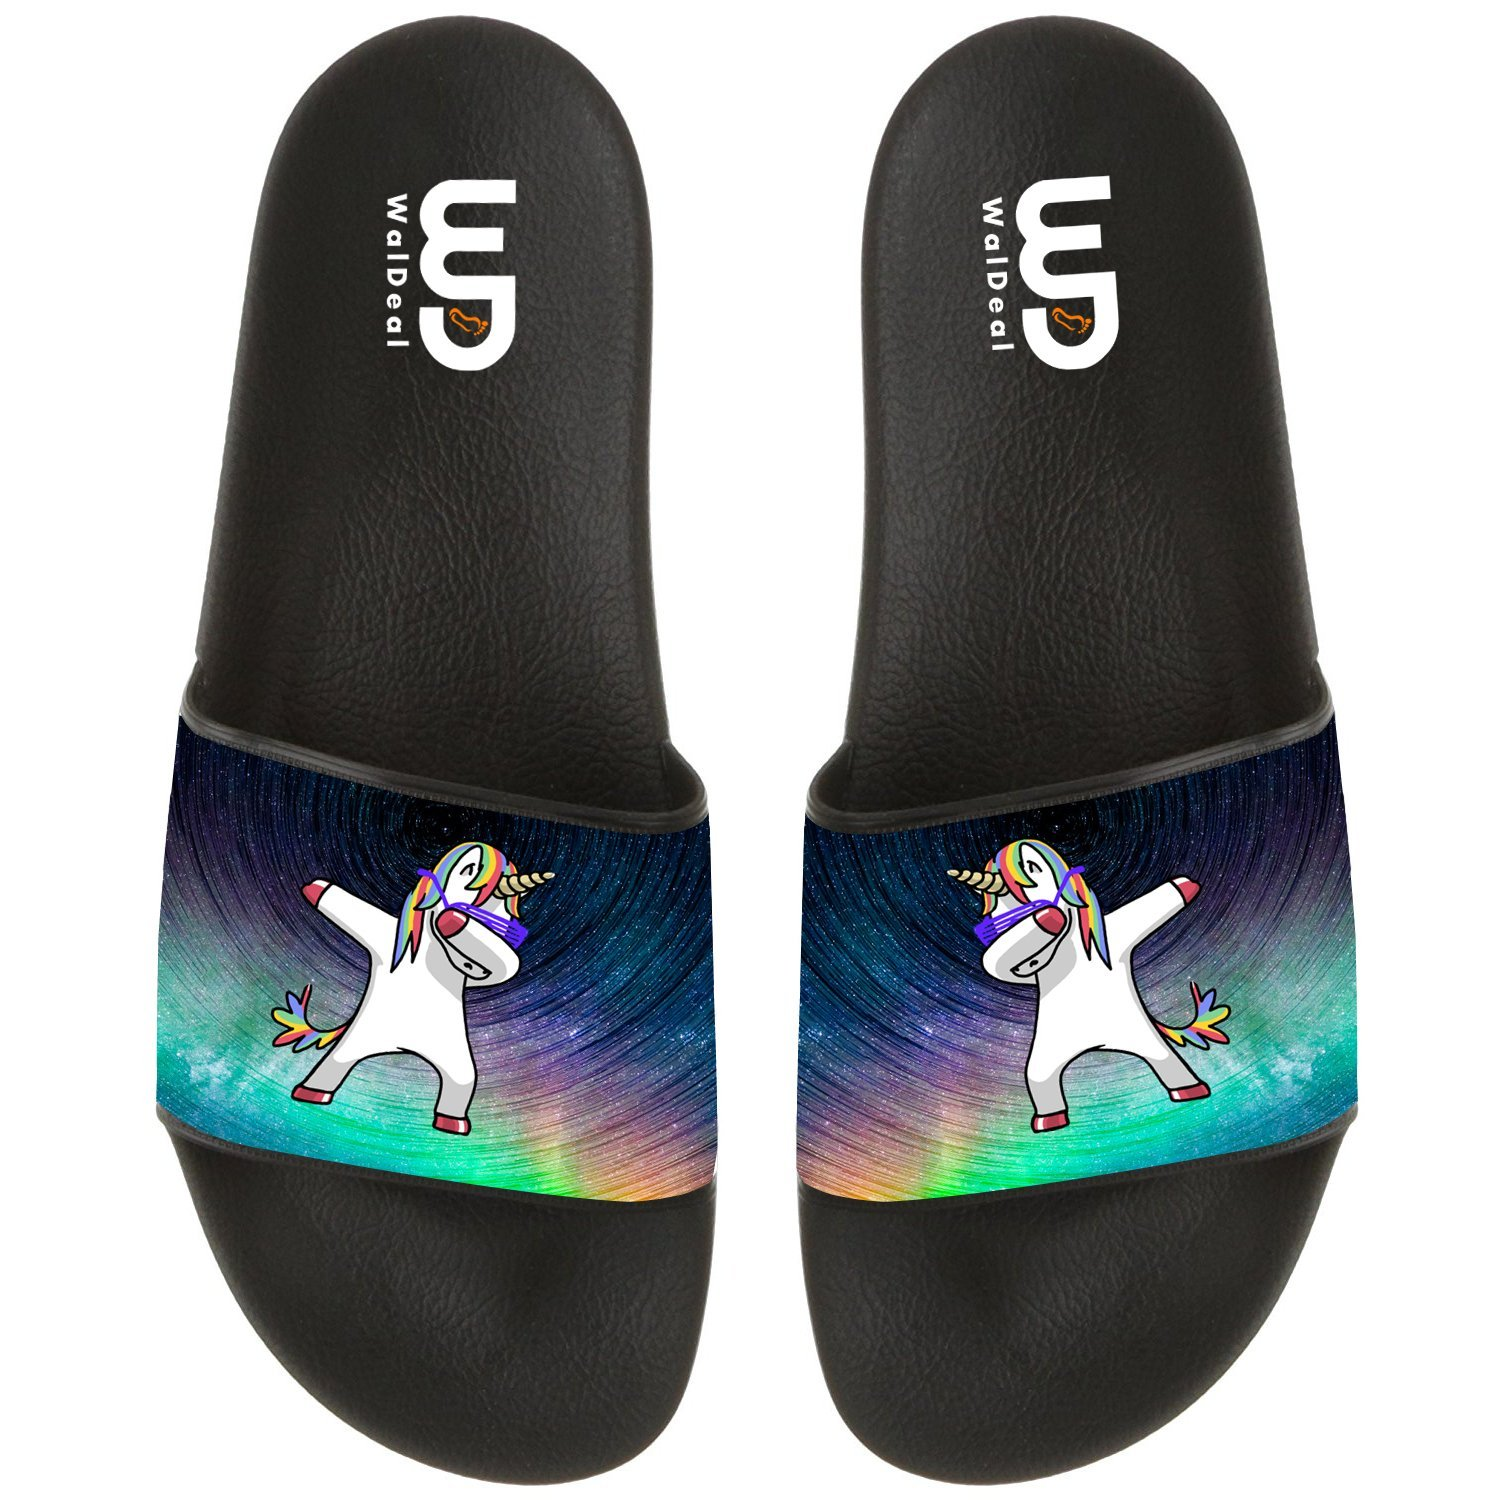 Unicorn With Rainbows And Clouds Summer Non-slip Slide Sandals Home Shoes Beach Swim Flip Flops Indoor and Outdoor Slipper Women Men B075P412PF 14 B(M) US|Starry Sky